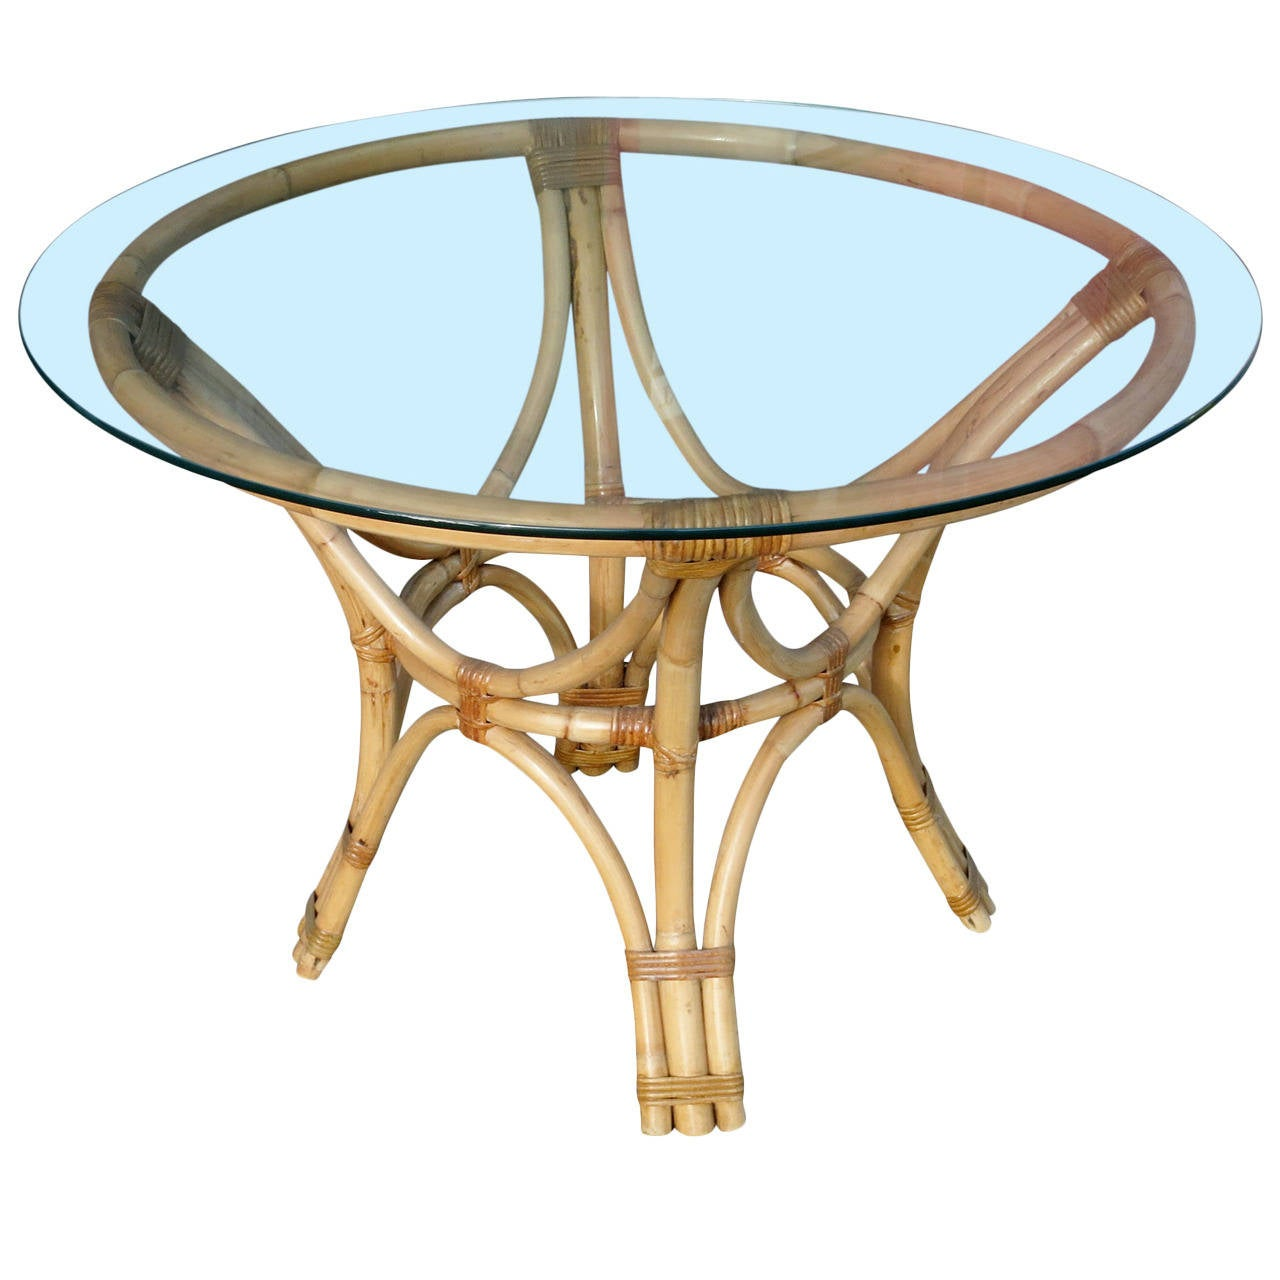 Rattan Bent Wood Dining Table with Round Glass Top For  : 1924942l from www.1stdibs.com size 1280 x 1280 jpeg 96kB